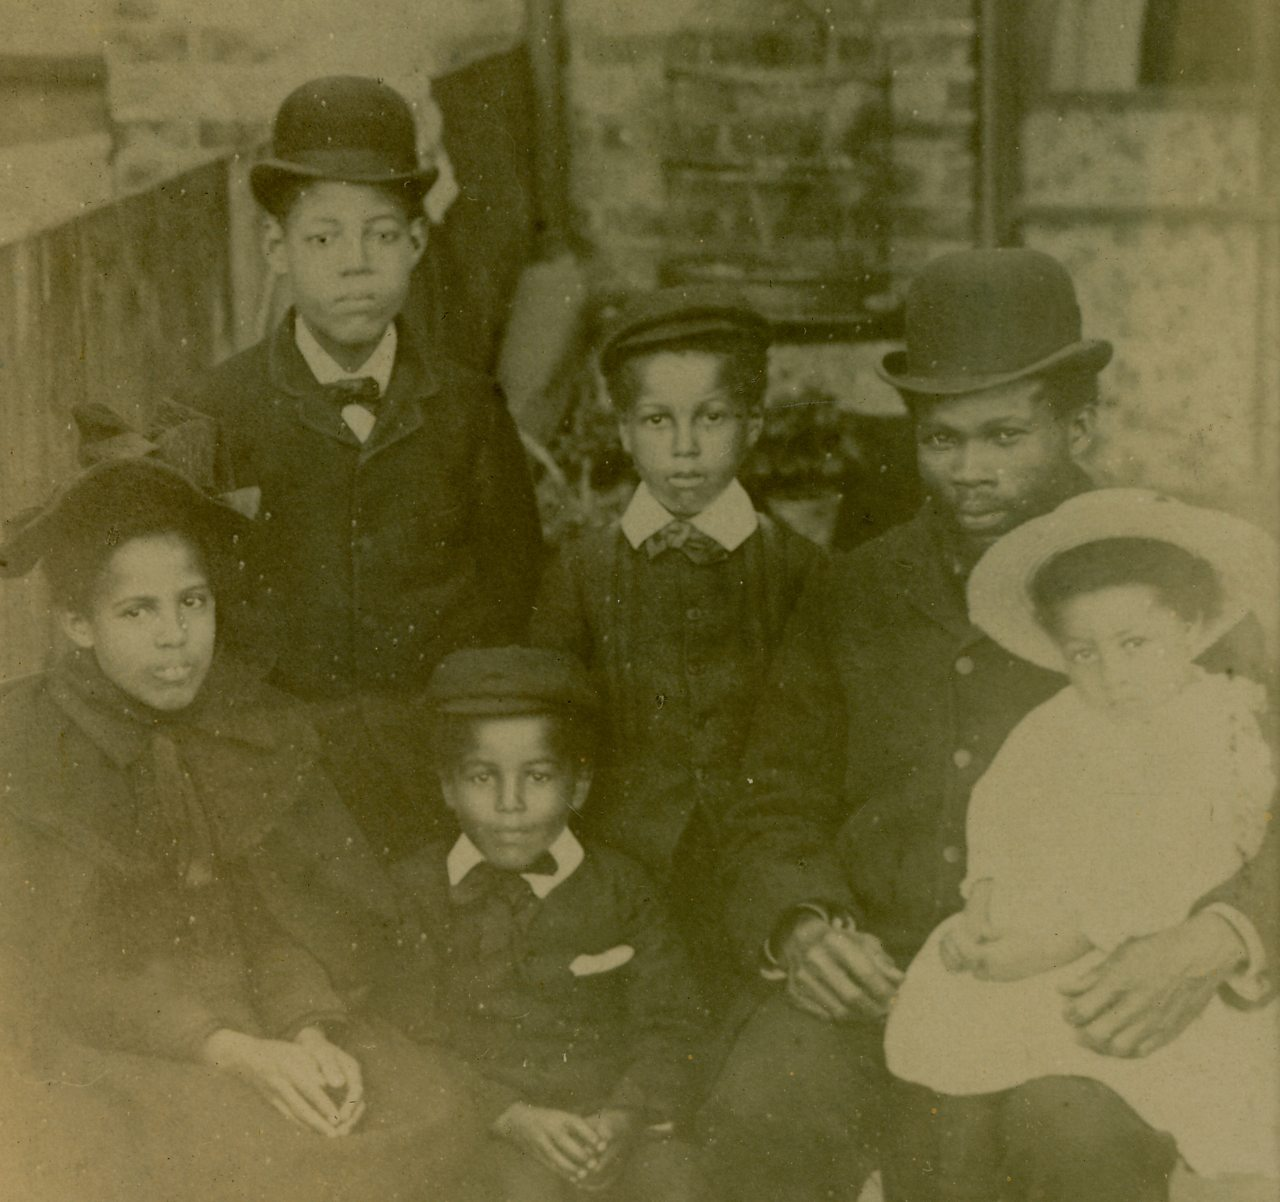 Walter Tull as a child pictured with his family